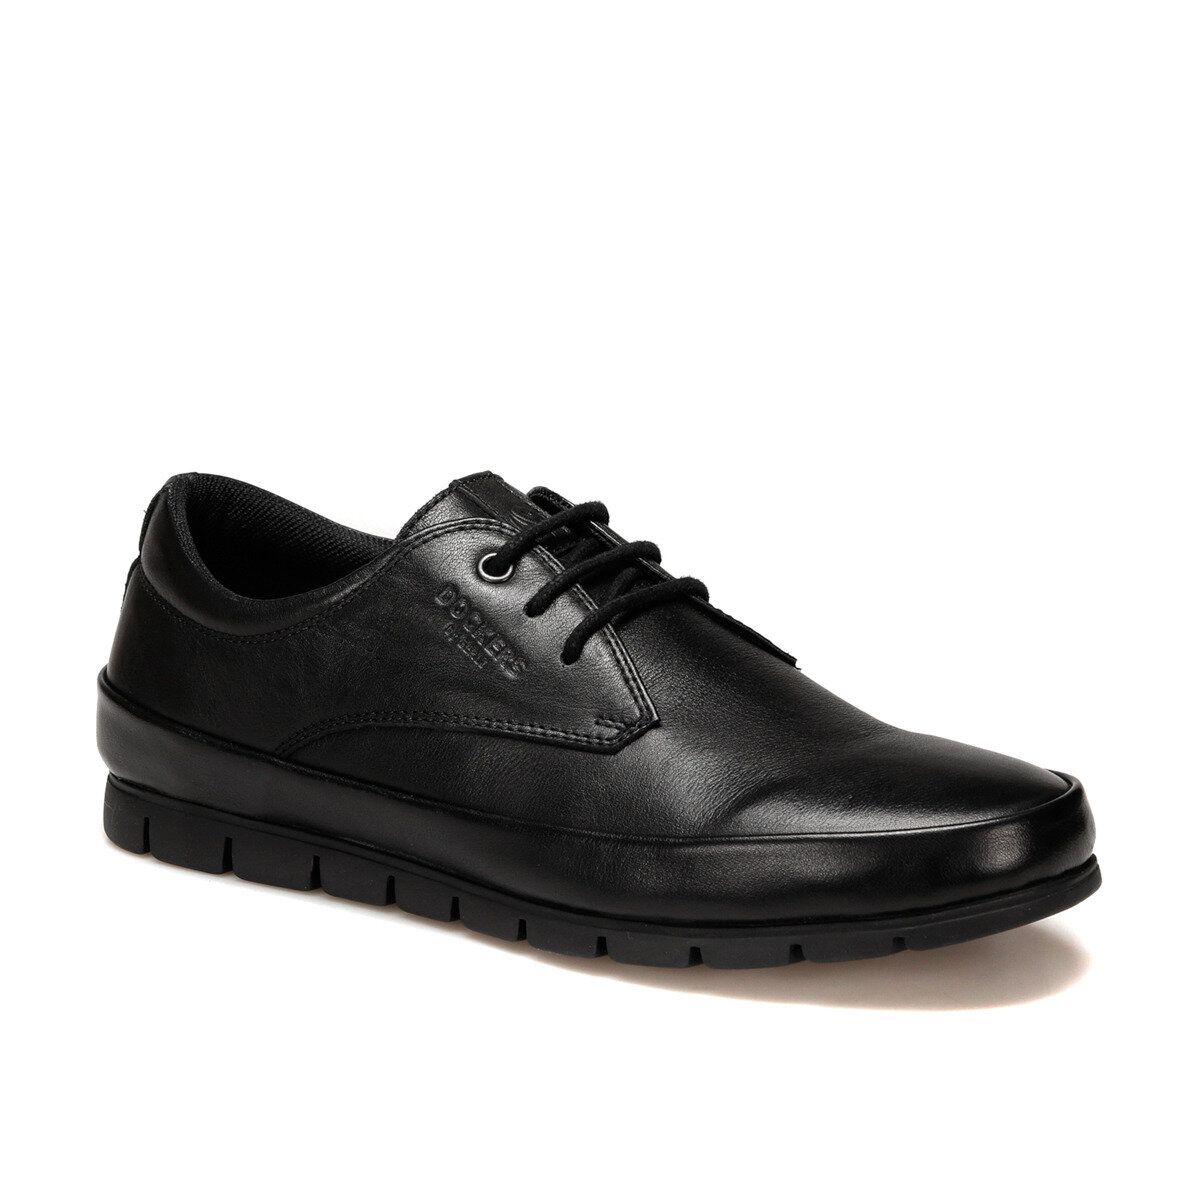 FLO 228001 Black Men 'S Comfort Shoes By Dockers The Gerle